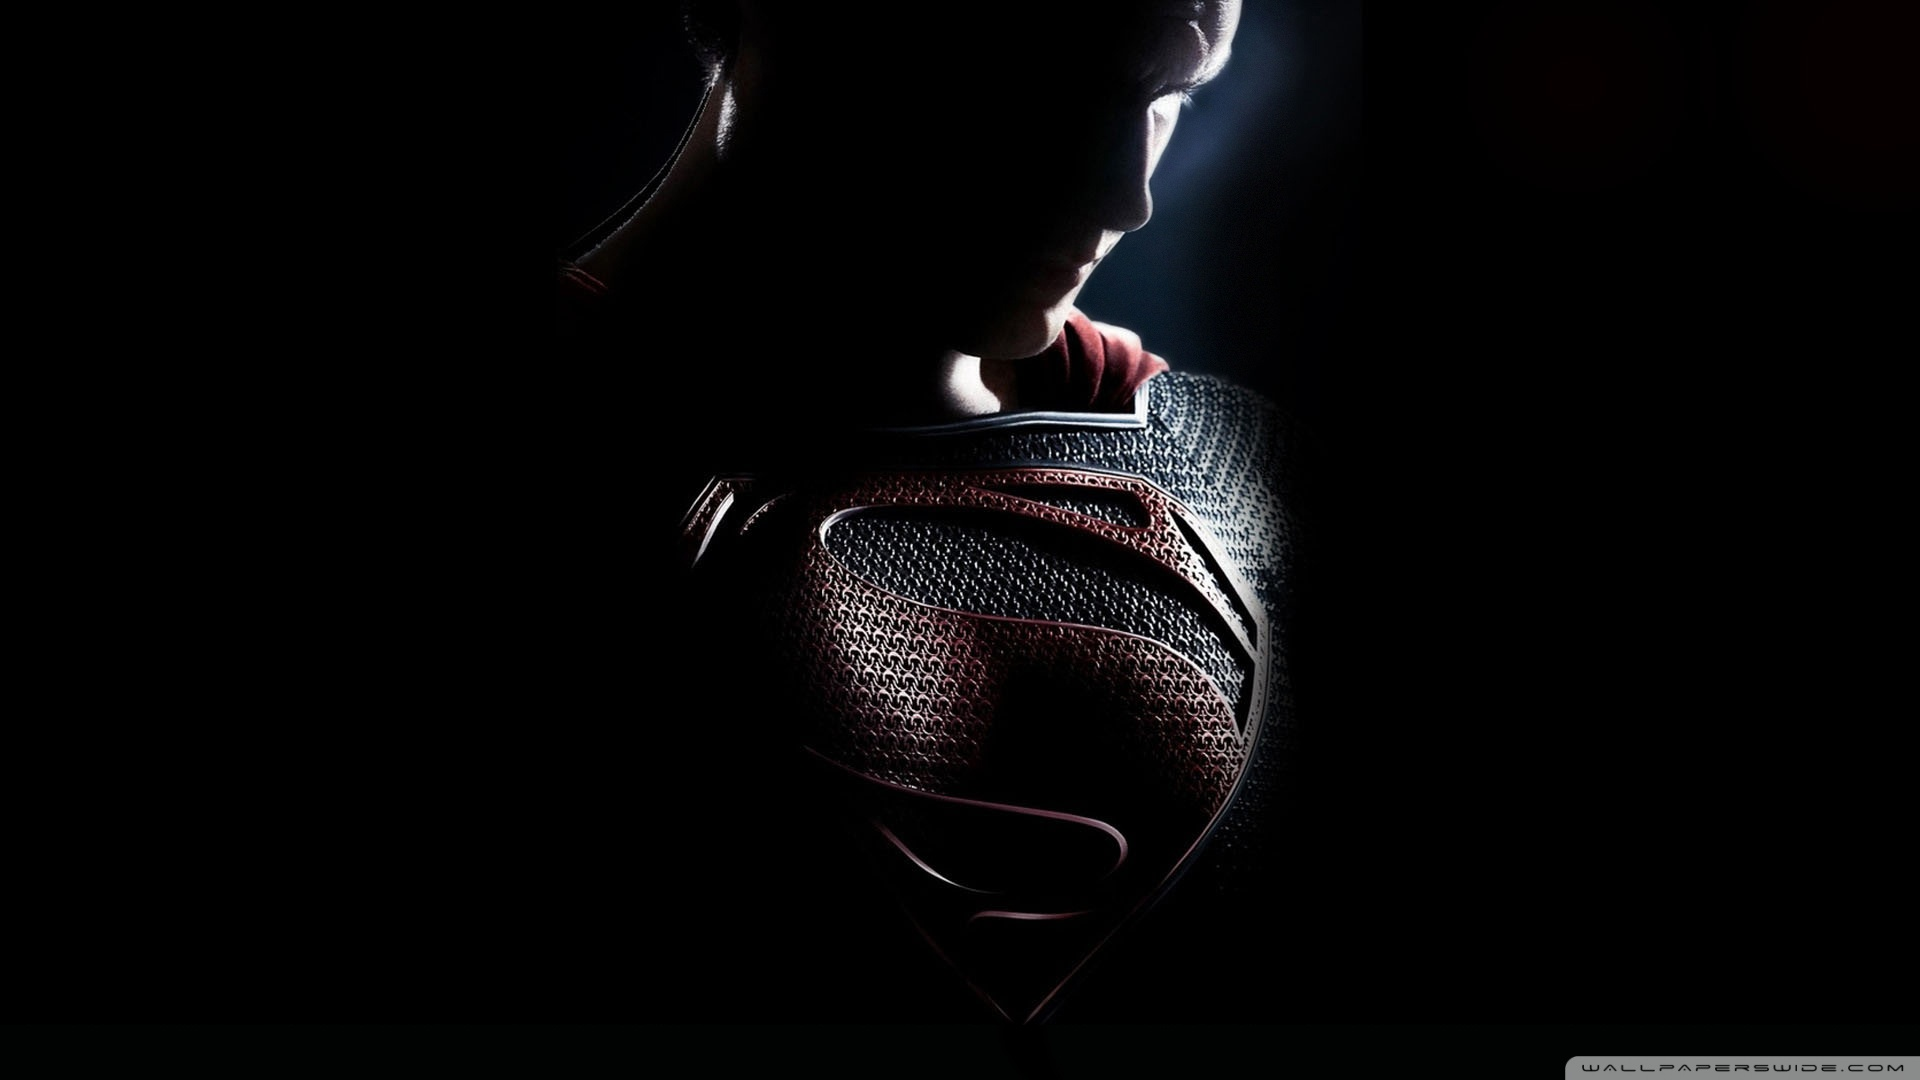 Man Of Steel 2013 Superman Wallpaper 1920x1080 Man Of Steel 2013 1920x1080